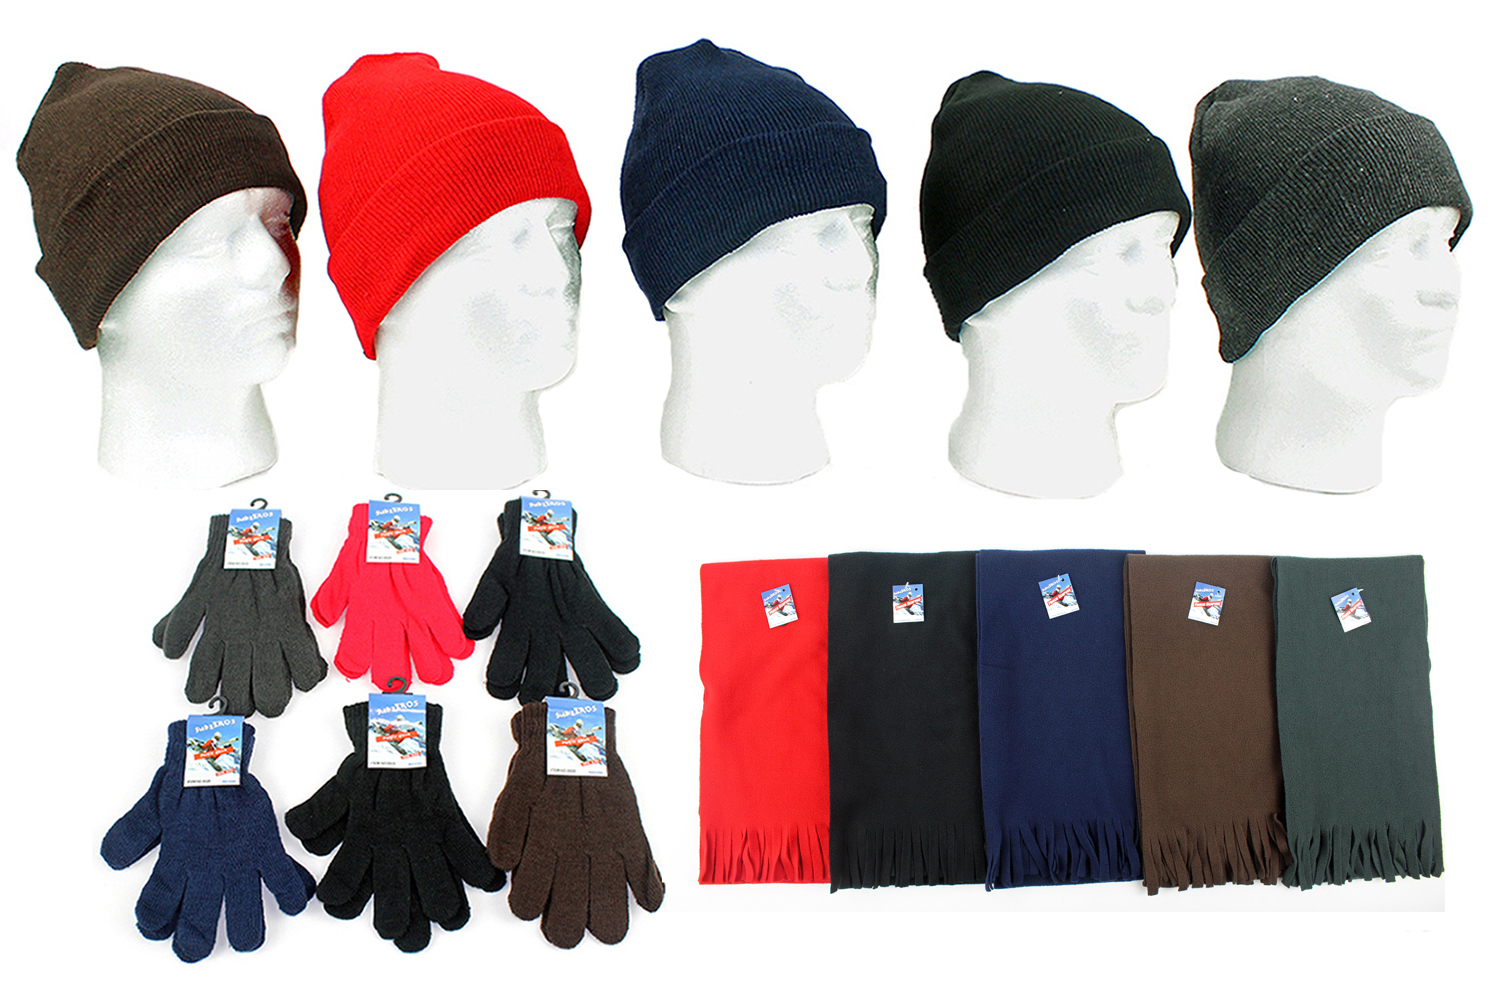 Wholesale Winter Hats, Gloves, and Scarves (SKU 357153